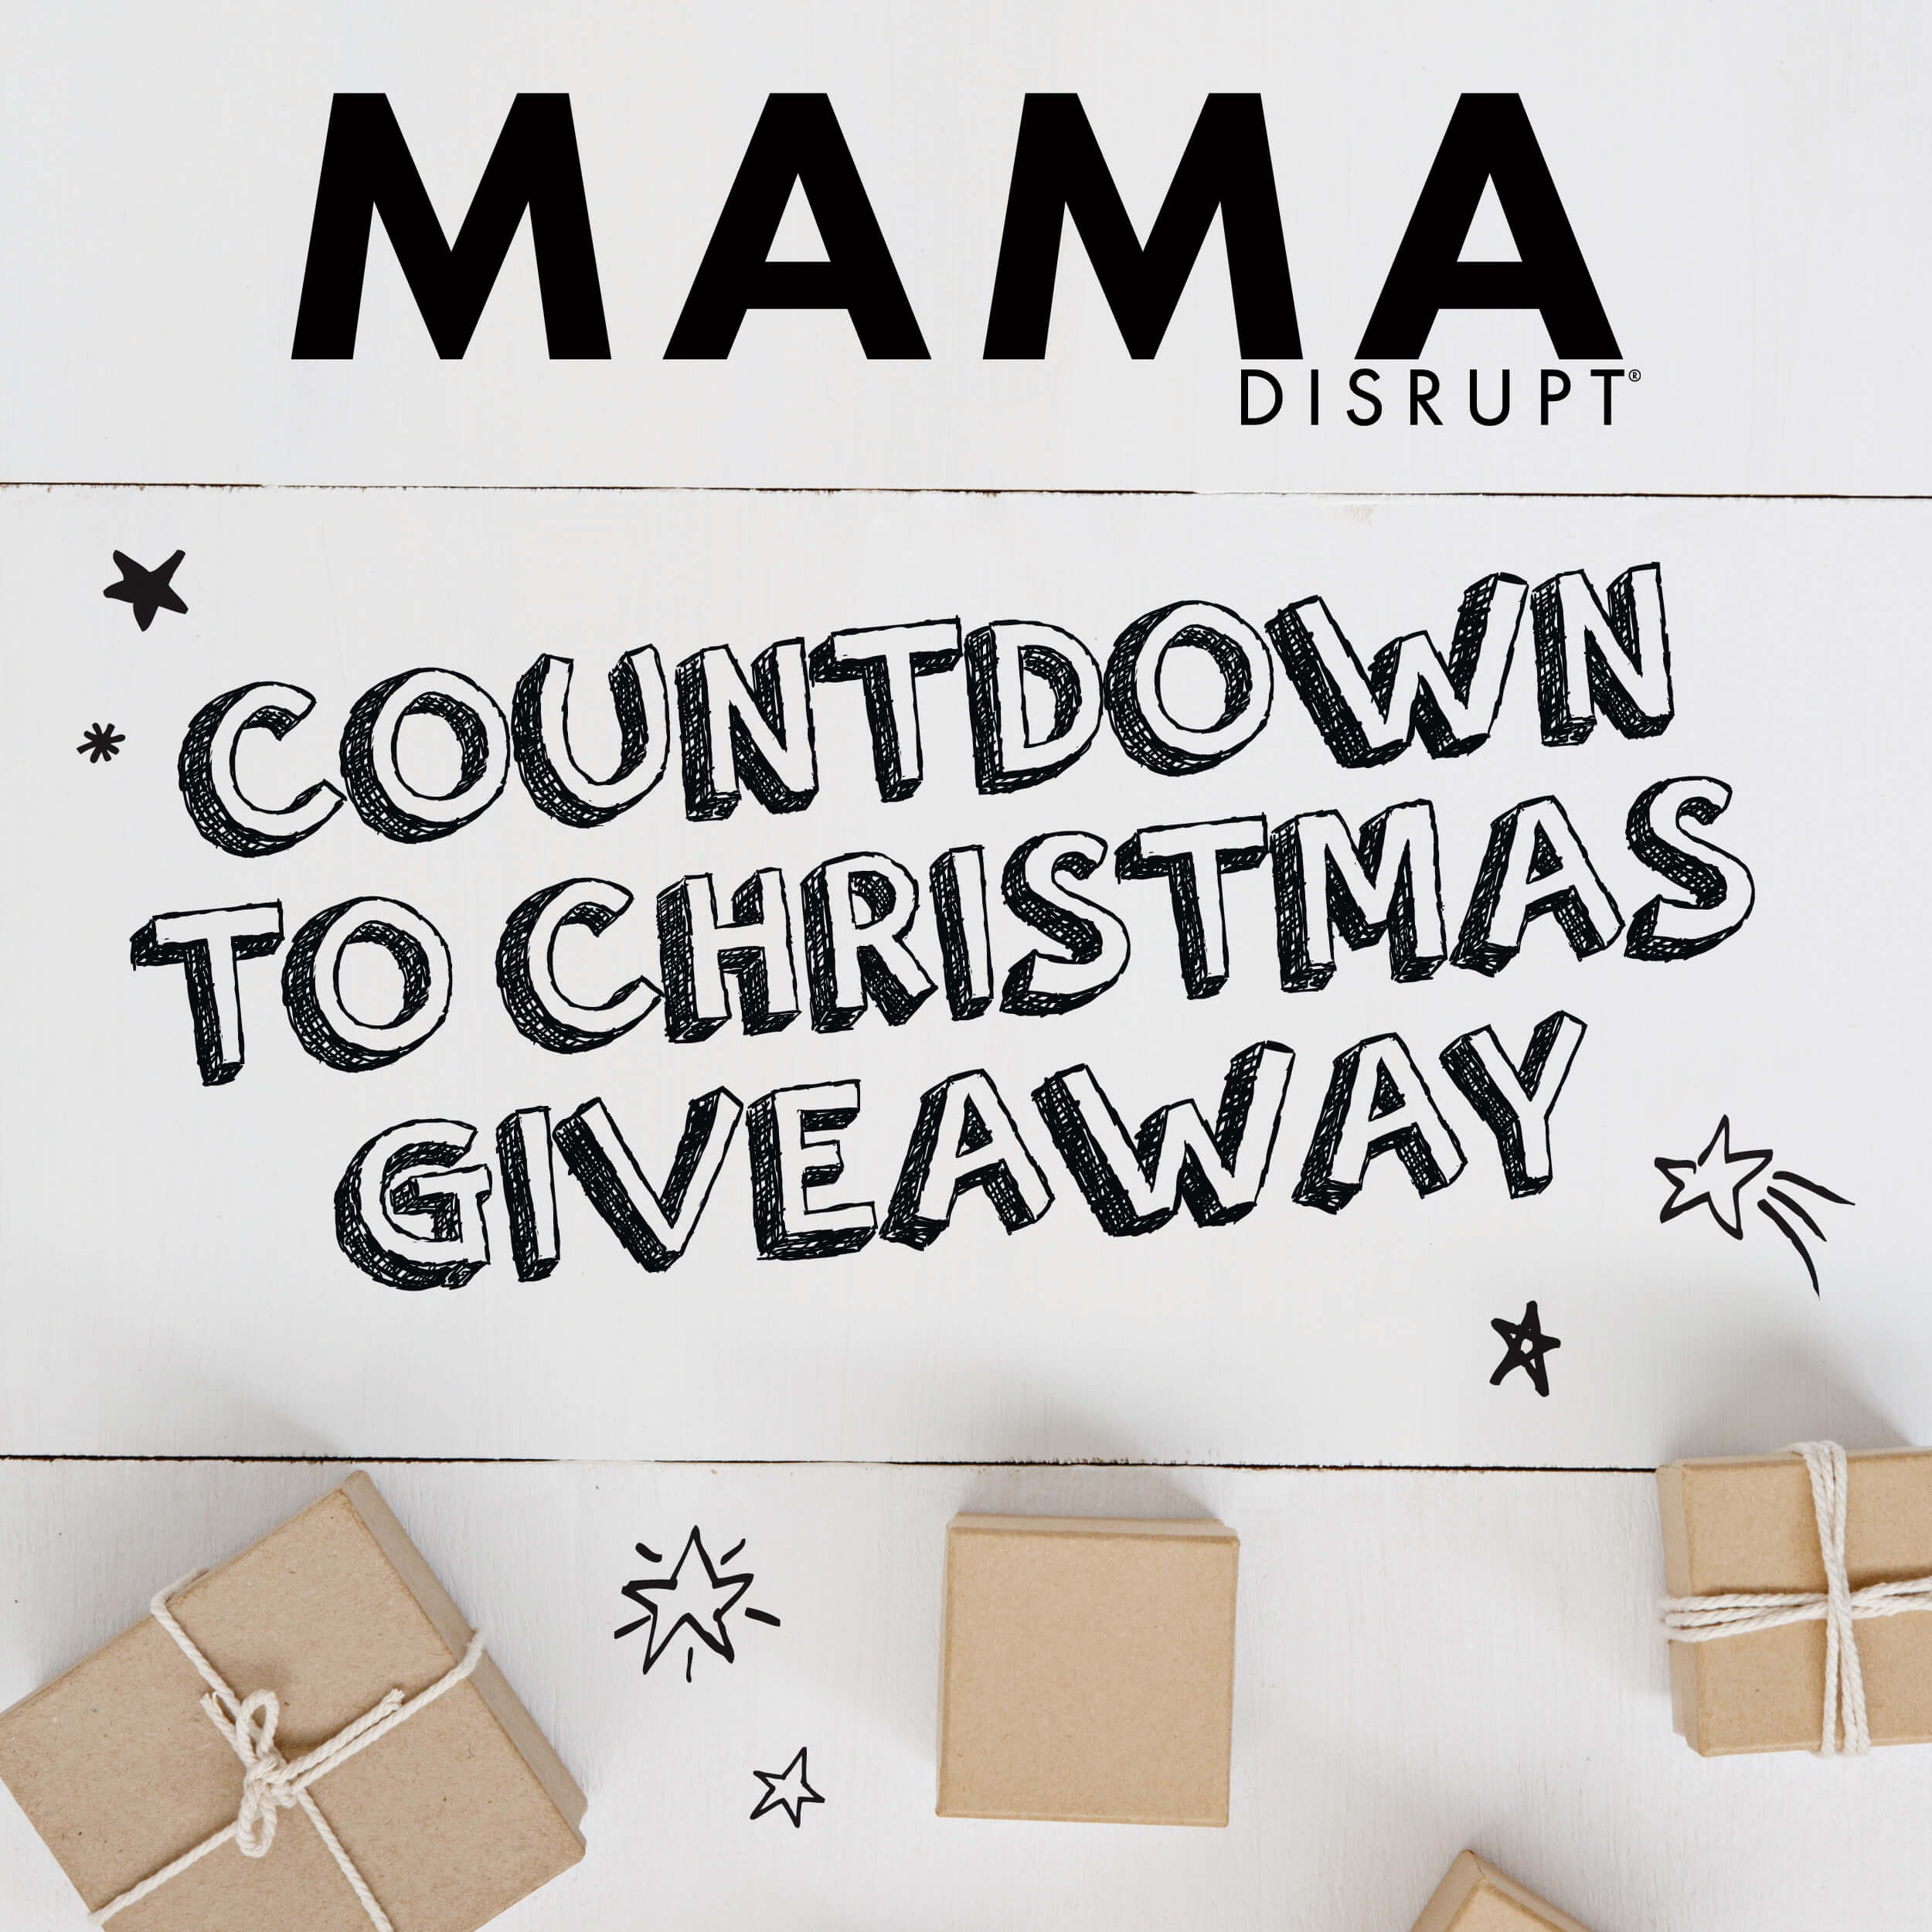 Mama Disrupt® Countdown to Christmas Giveaway